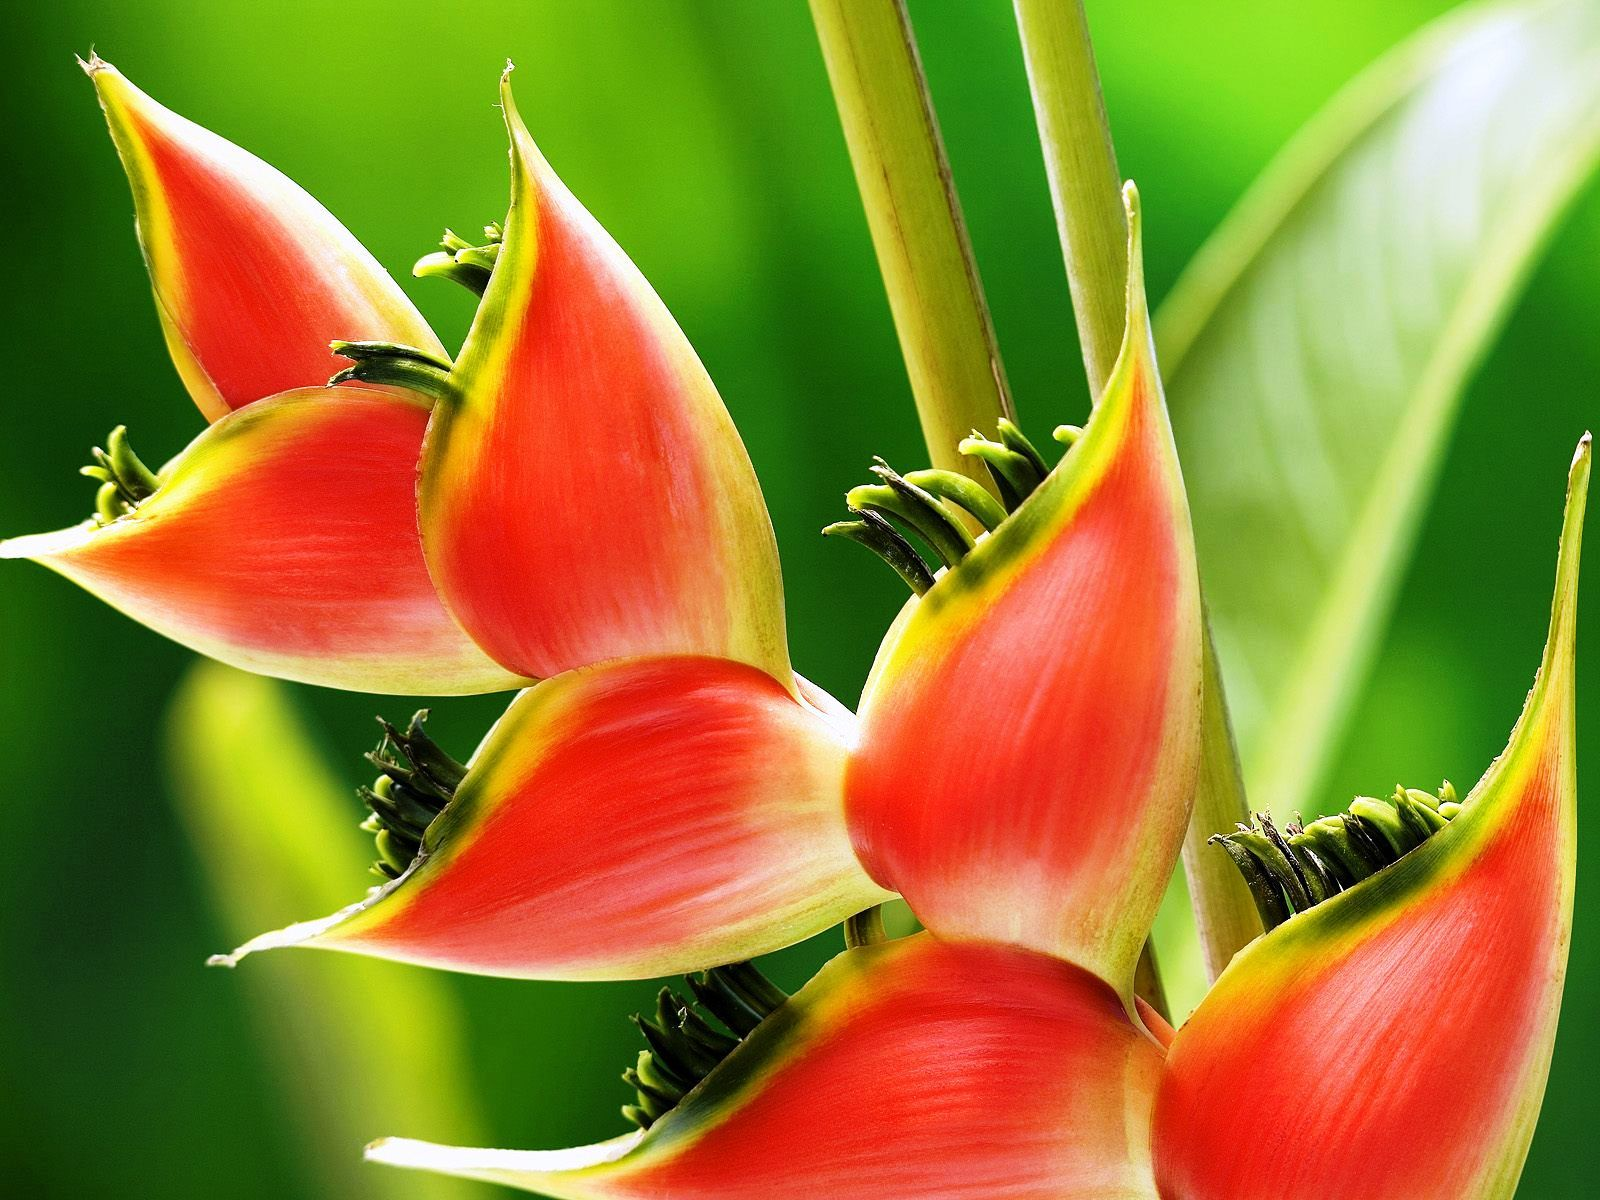 Heliconia bazaar for mom pinterest ginger plant plants and here we share information about rattlesnake a rare tropical flower species this flower attracts hummingbirds and other pollinators izmirmasajfo Images